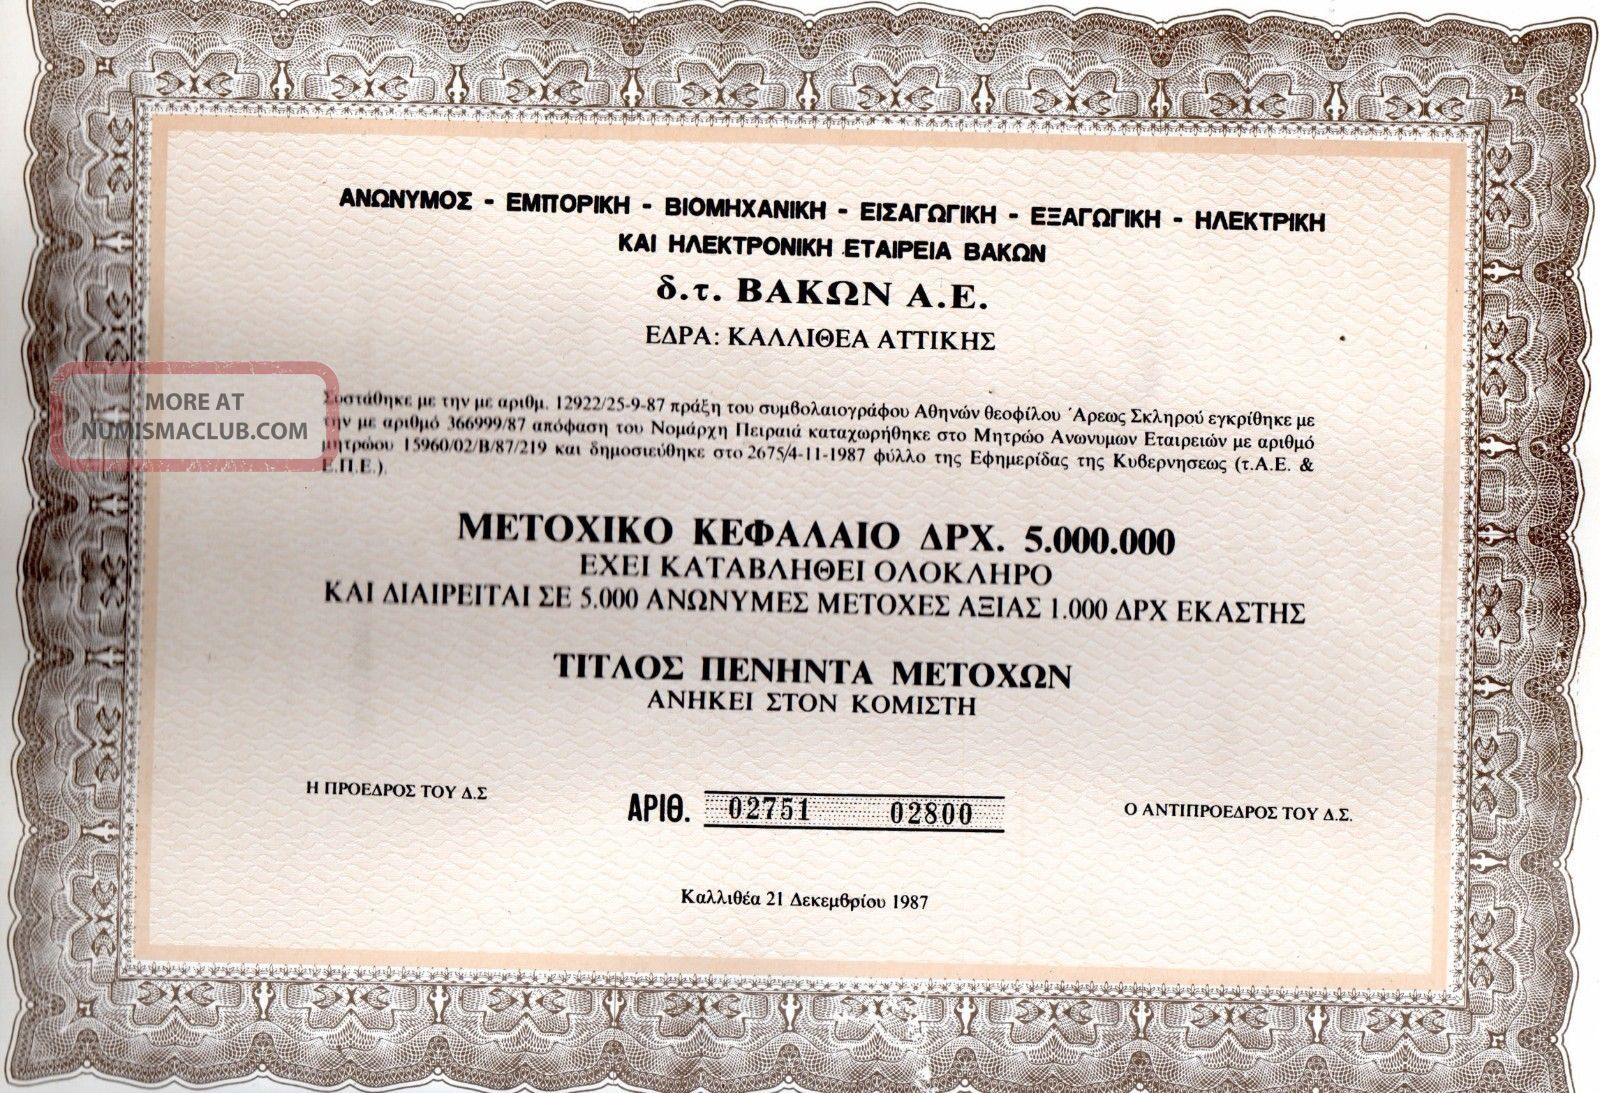 Greek Electronic Company Bakon Sa Title Of 50 Shares Bond Stock Certificate 1987 World photo